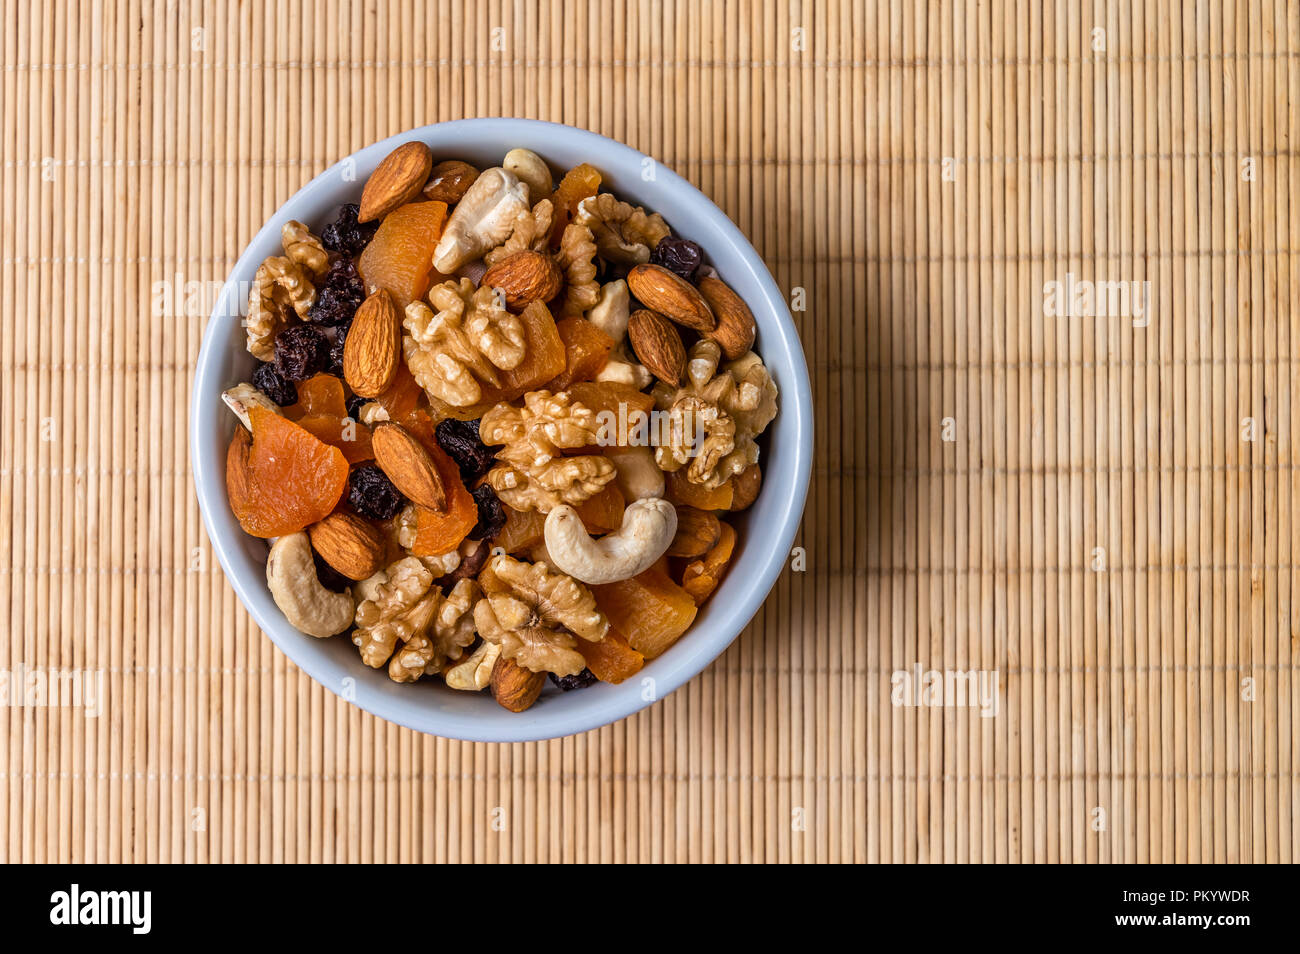 Mixed nuts and fruits in a white bowl - Stock Image